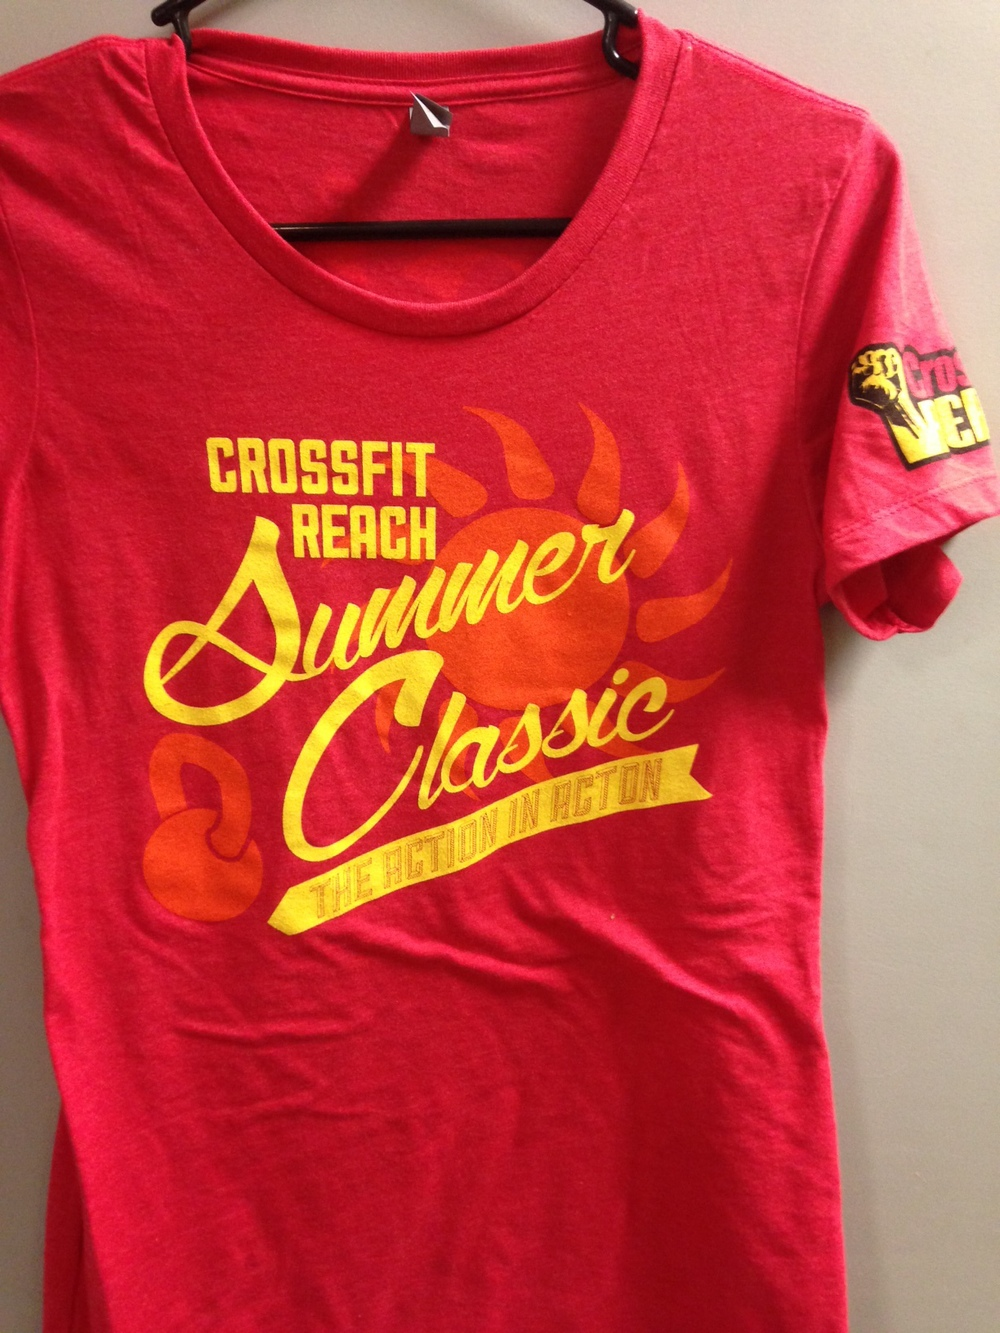 Crossfit Reach summer 1.JPG